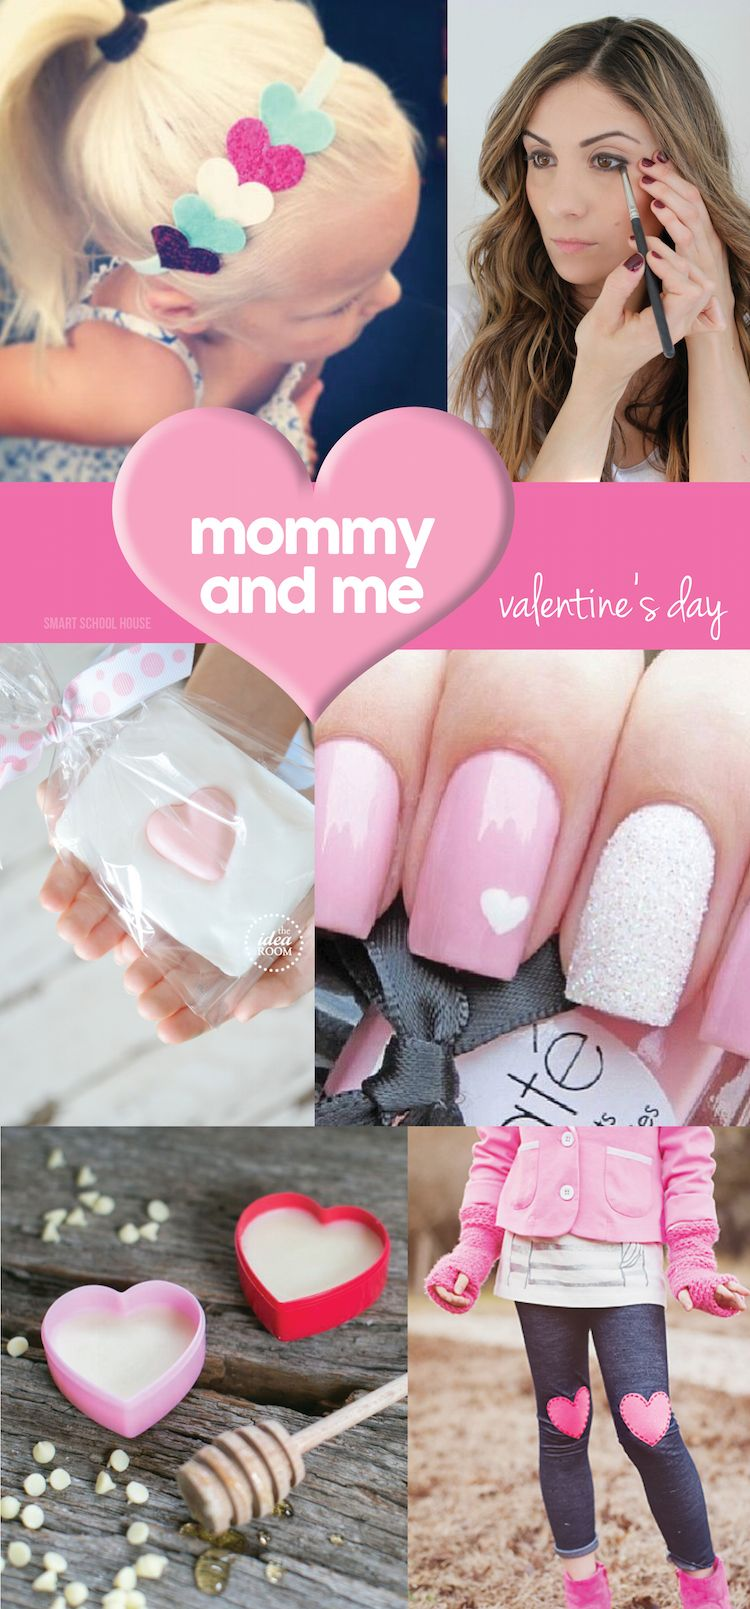 10+ Crafts for mom and daughter ideas